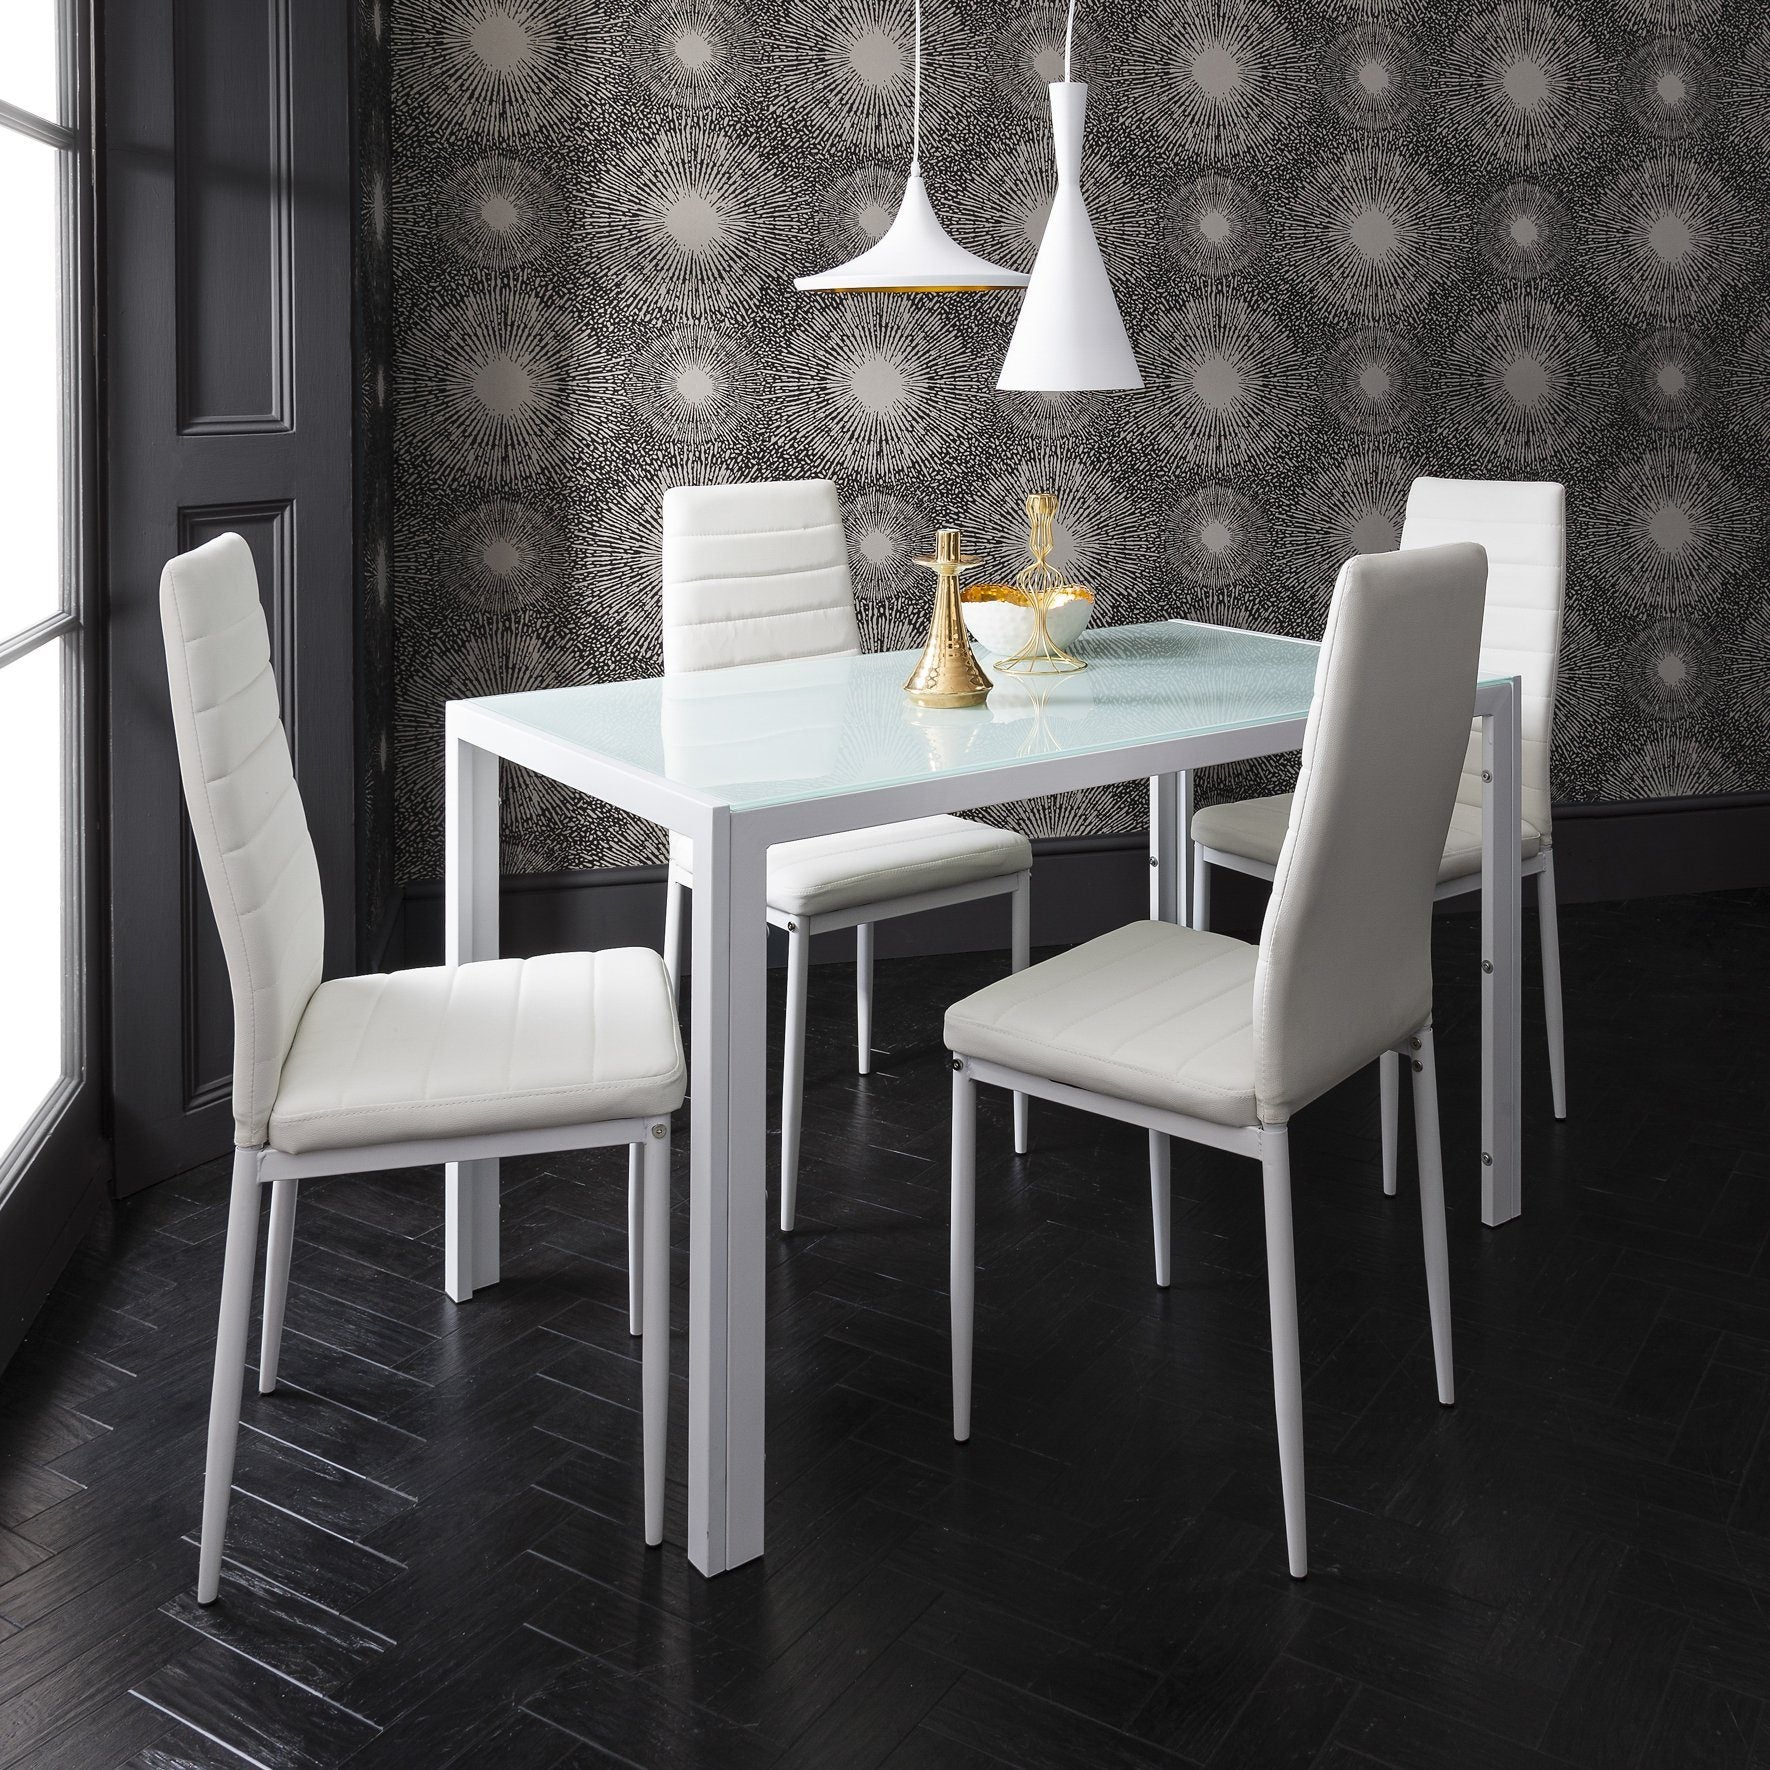 White Dining Table And Chairs 4 Seater Set Laura James